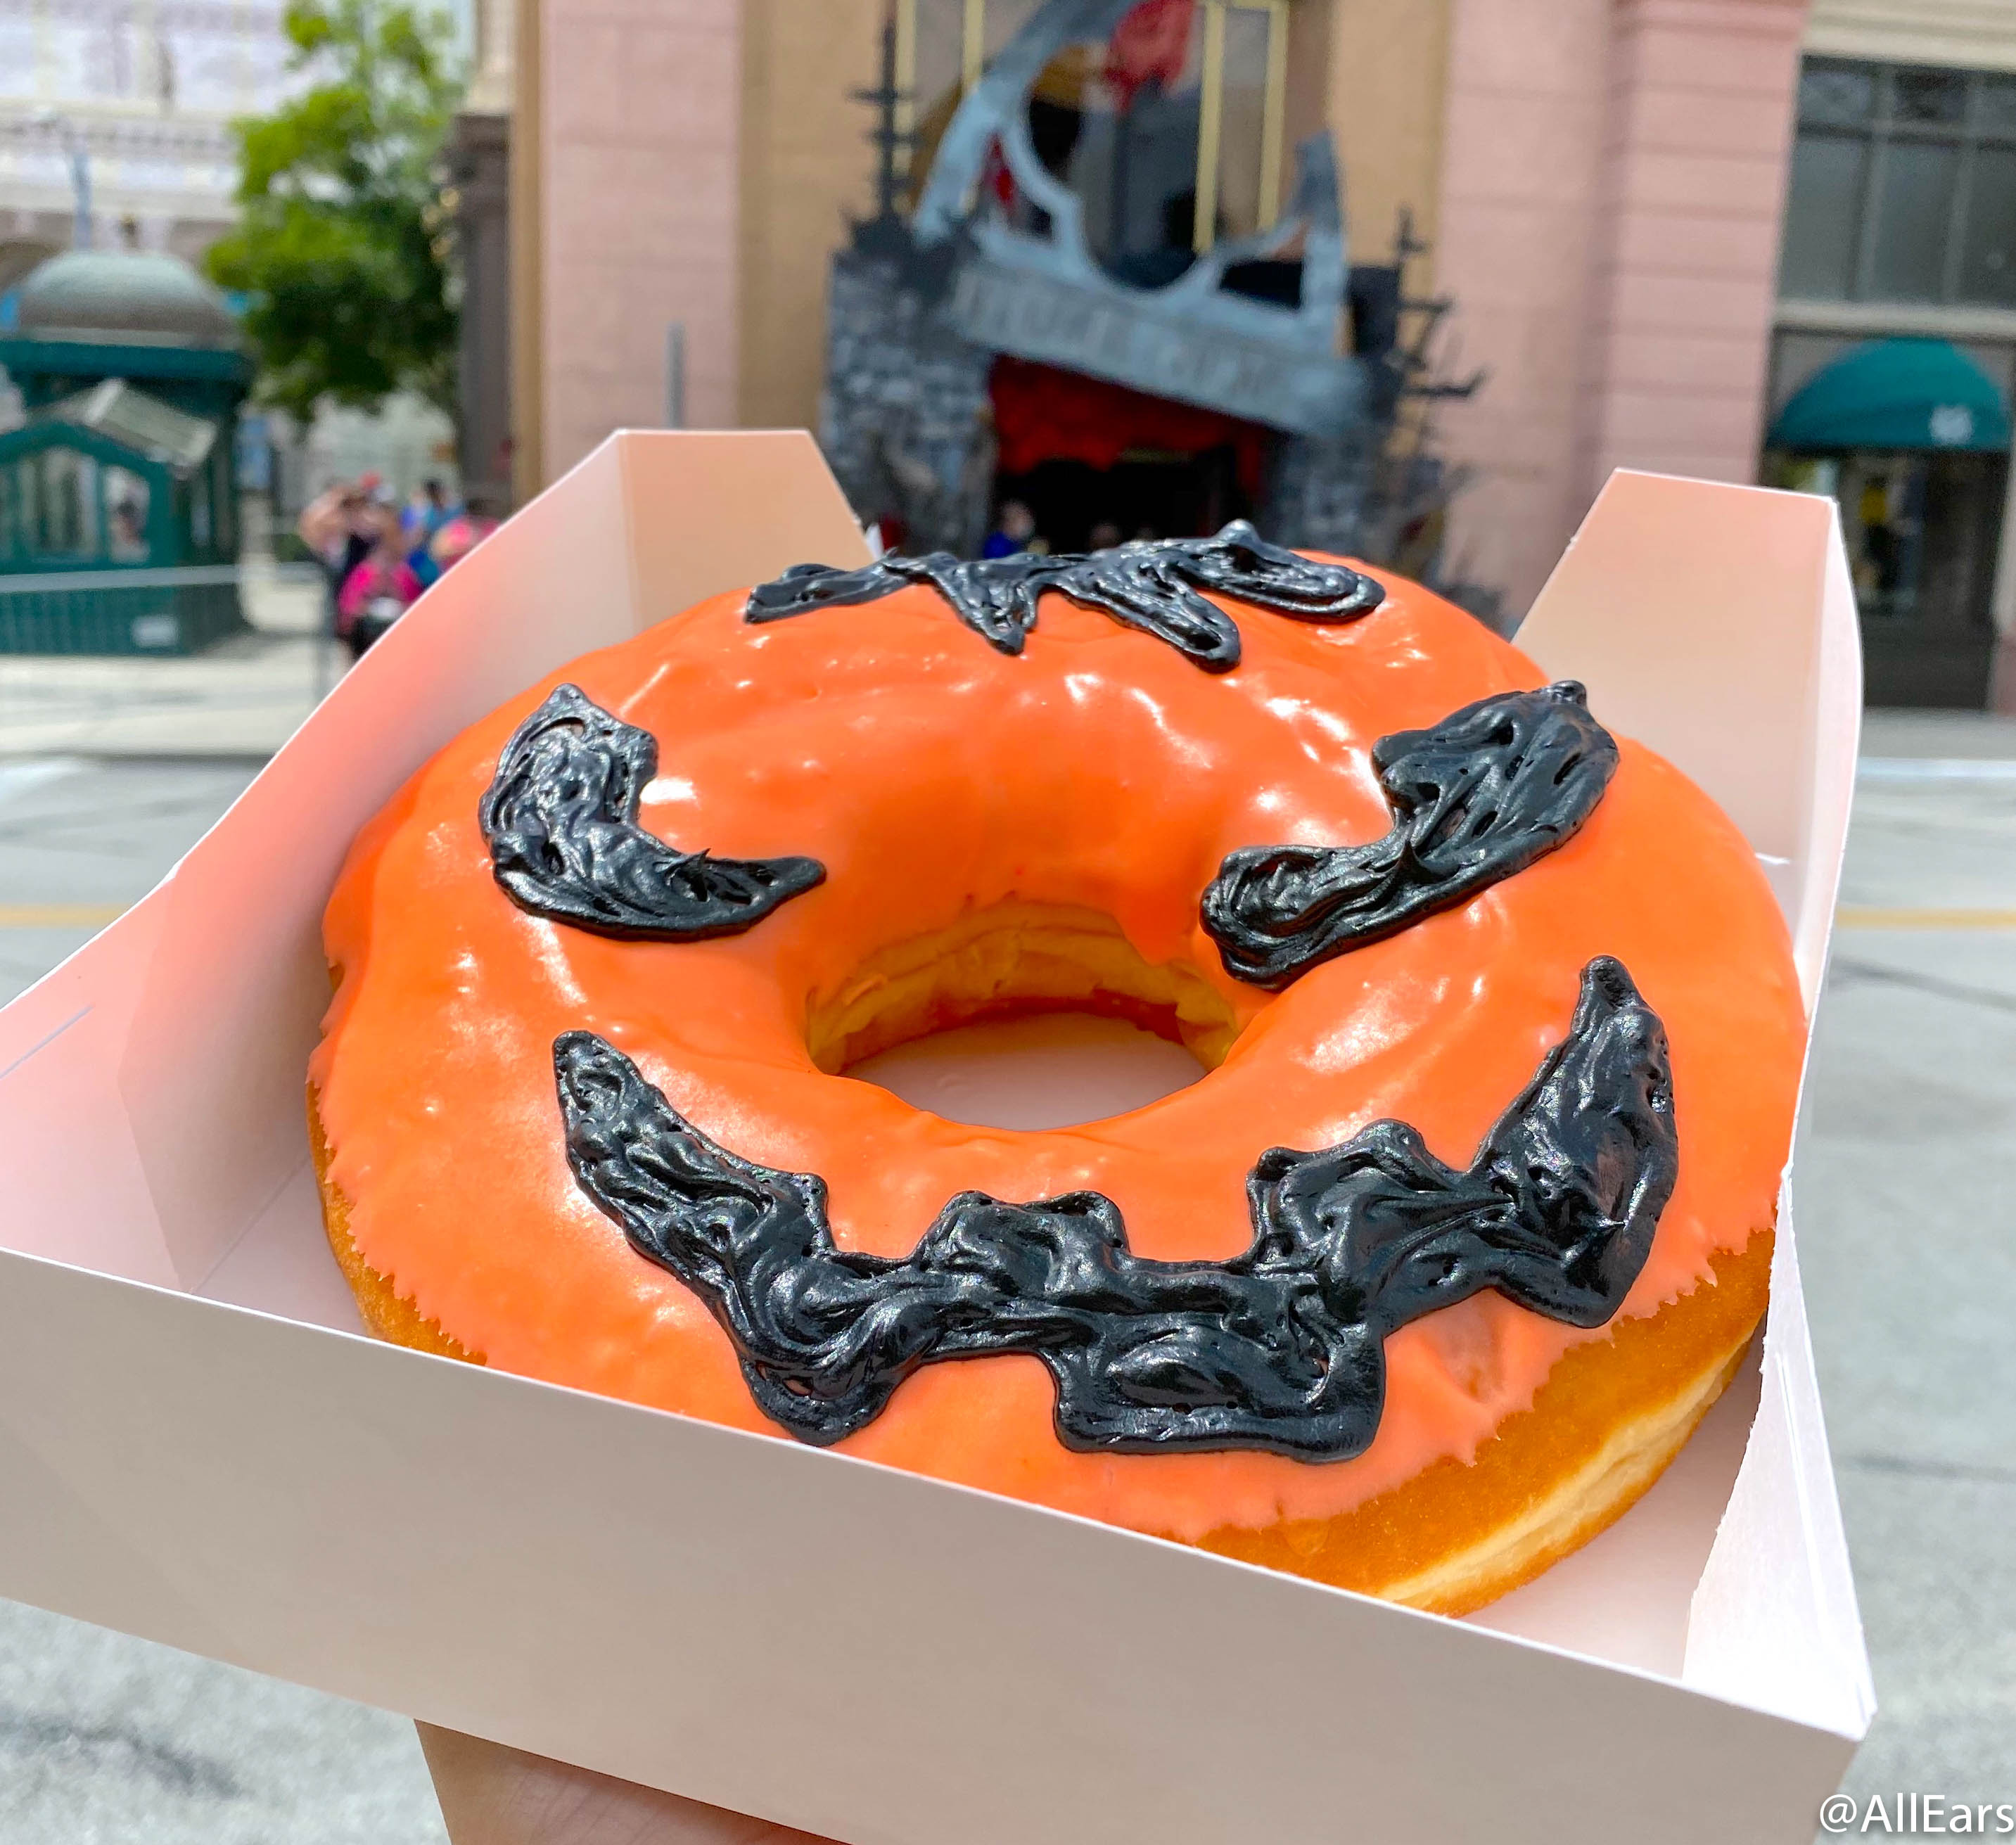 Halloween Horror Nights 2020 Pumpkin This Jack O' Lantern Donut Is as Big as Your HEAD! Take a Look at